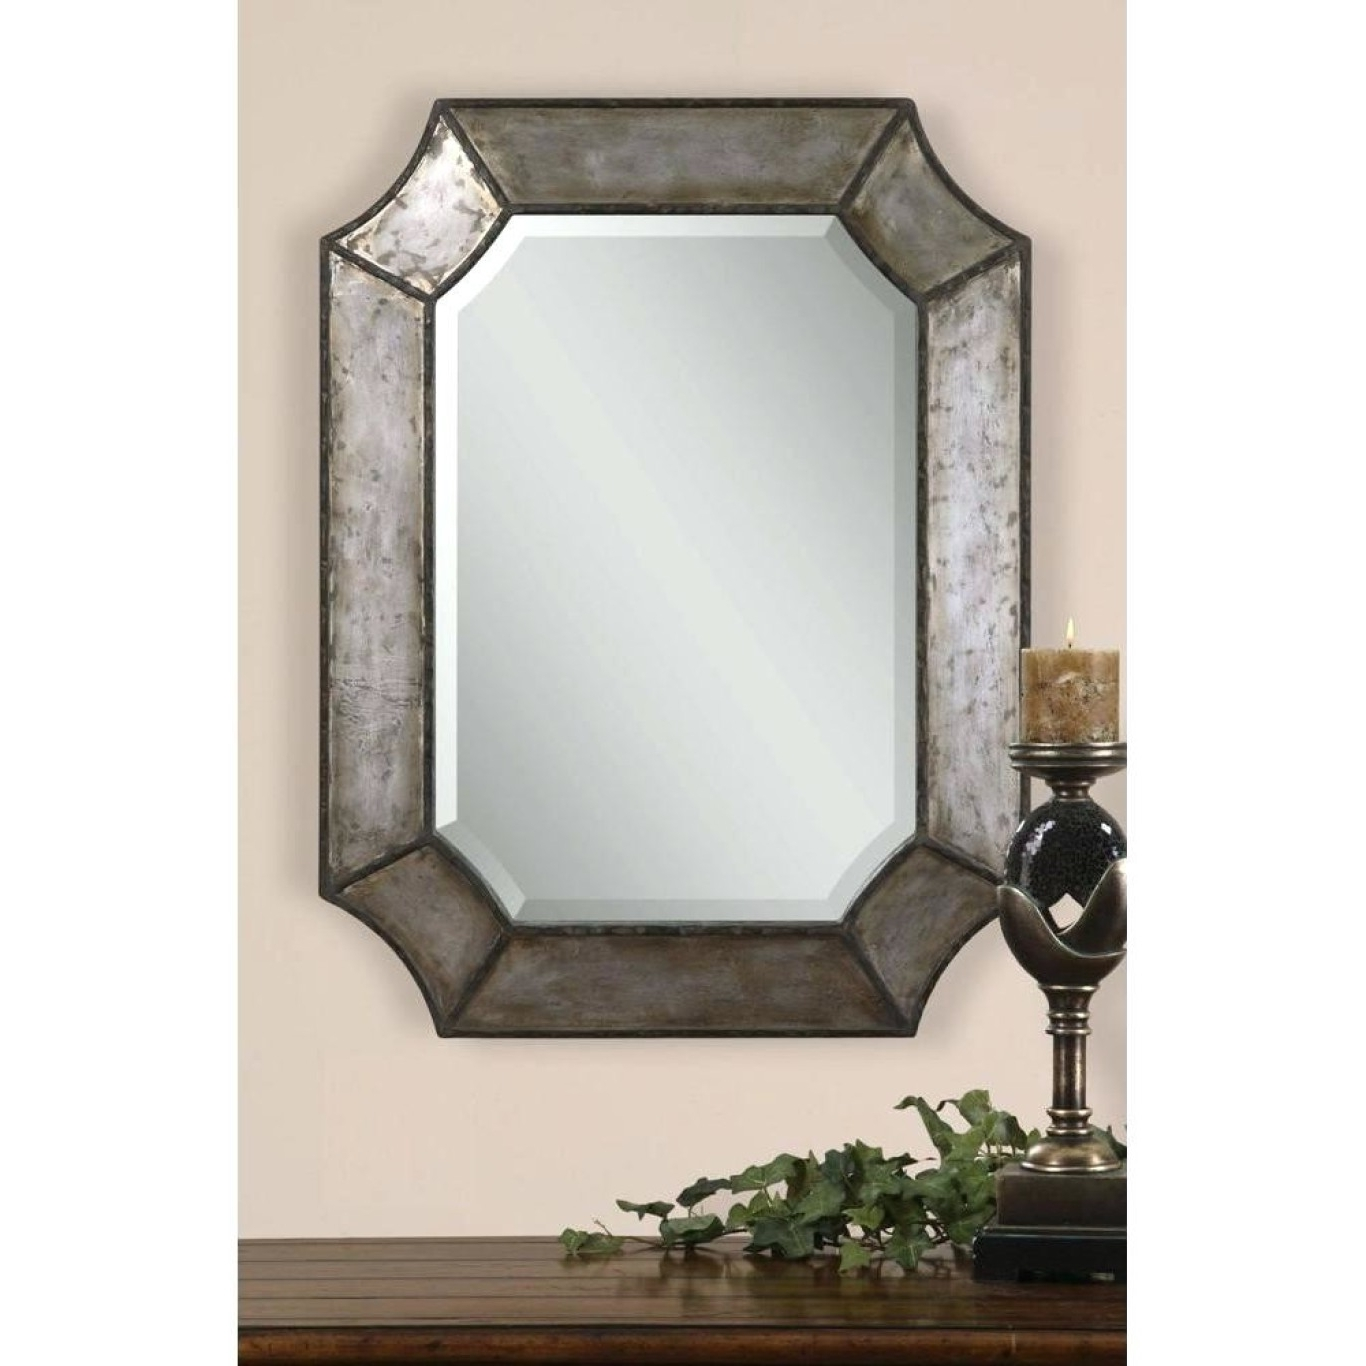 Widely Used Mirrored Frame Wall Art Within Mirrored Frame Wall Art (View 9 of 15)